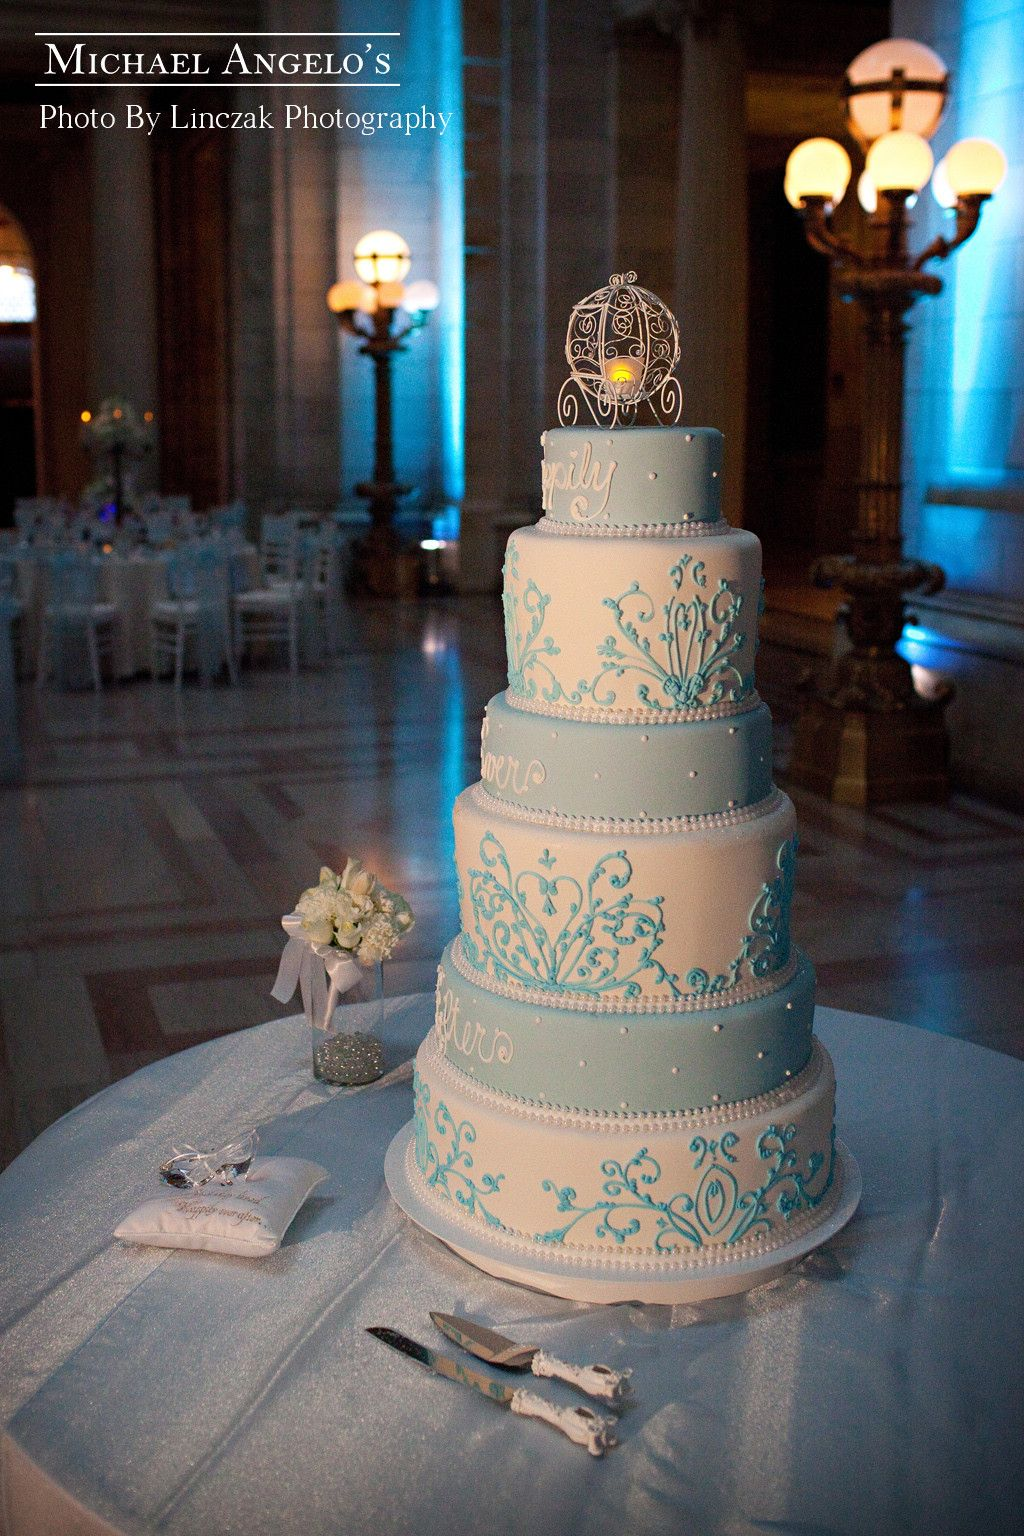 Happily Ever After  3Luxe   Luxe and Glamour   Pinterest     Cinderella  3Luxe This Cinderella wedding cake was inscribed with  Happily  Ever After  on three of the tiers  The other tieres were decorated with an  ornate